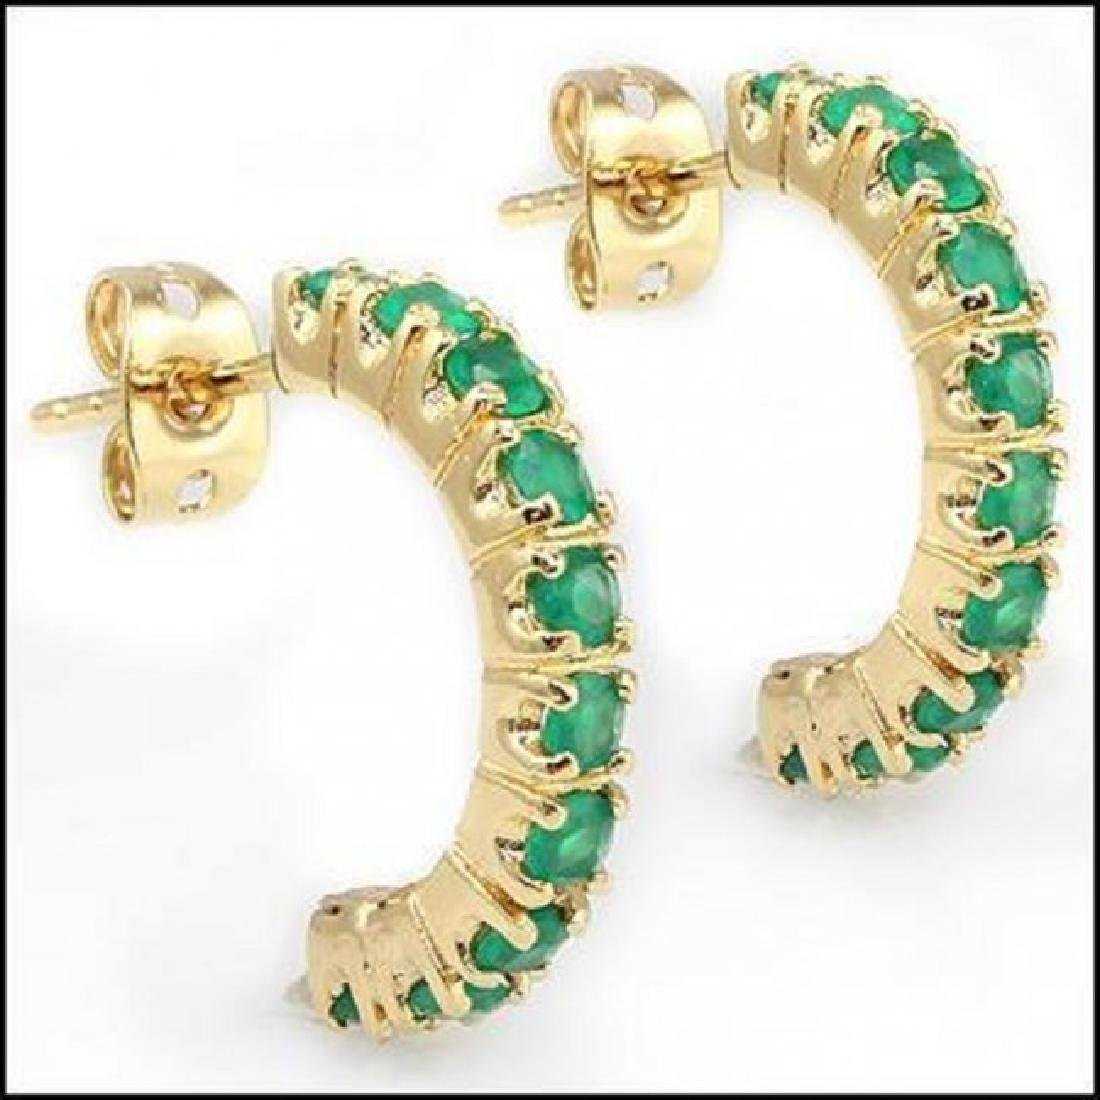 3.32 CT Green Agate Hoppes Designer Earrings $860 - 2